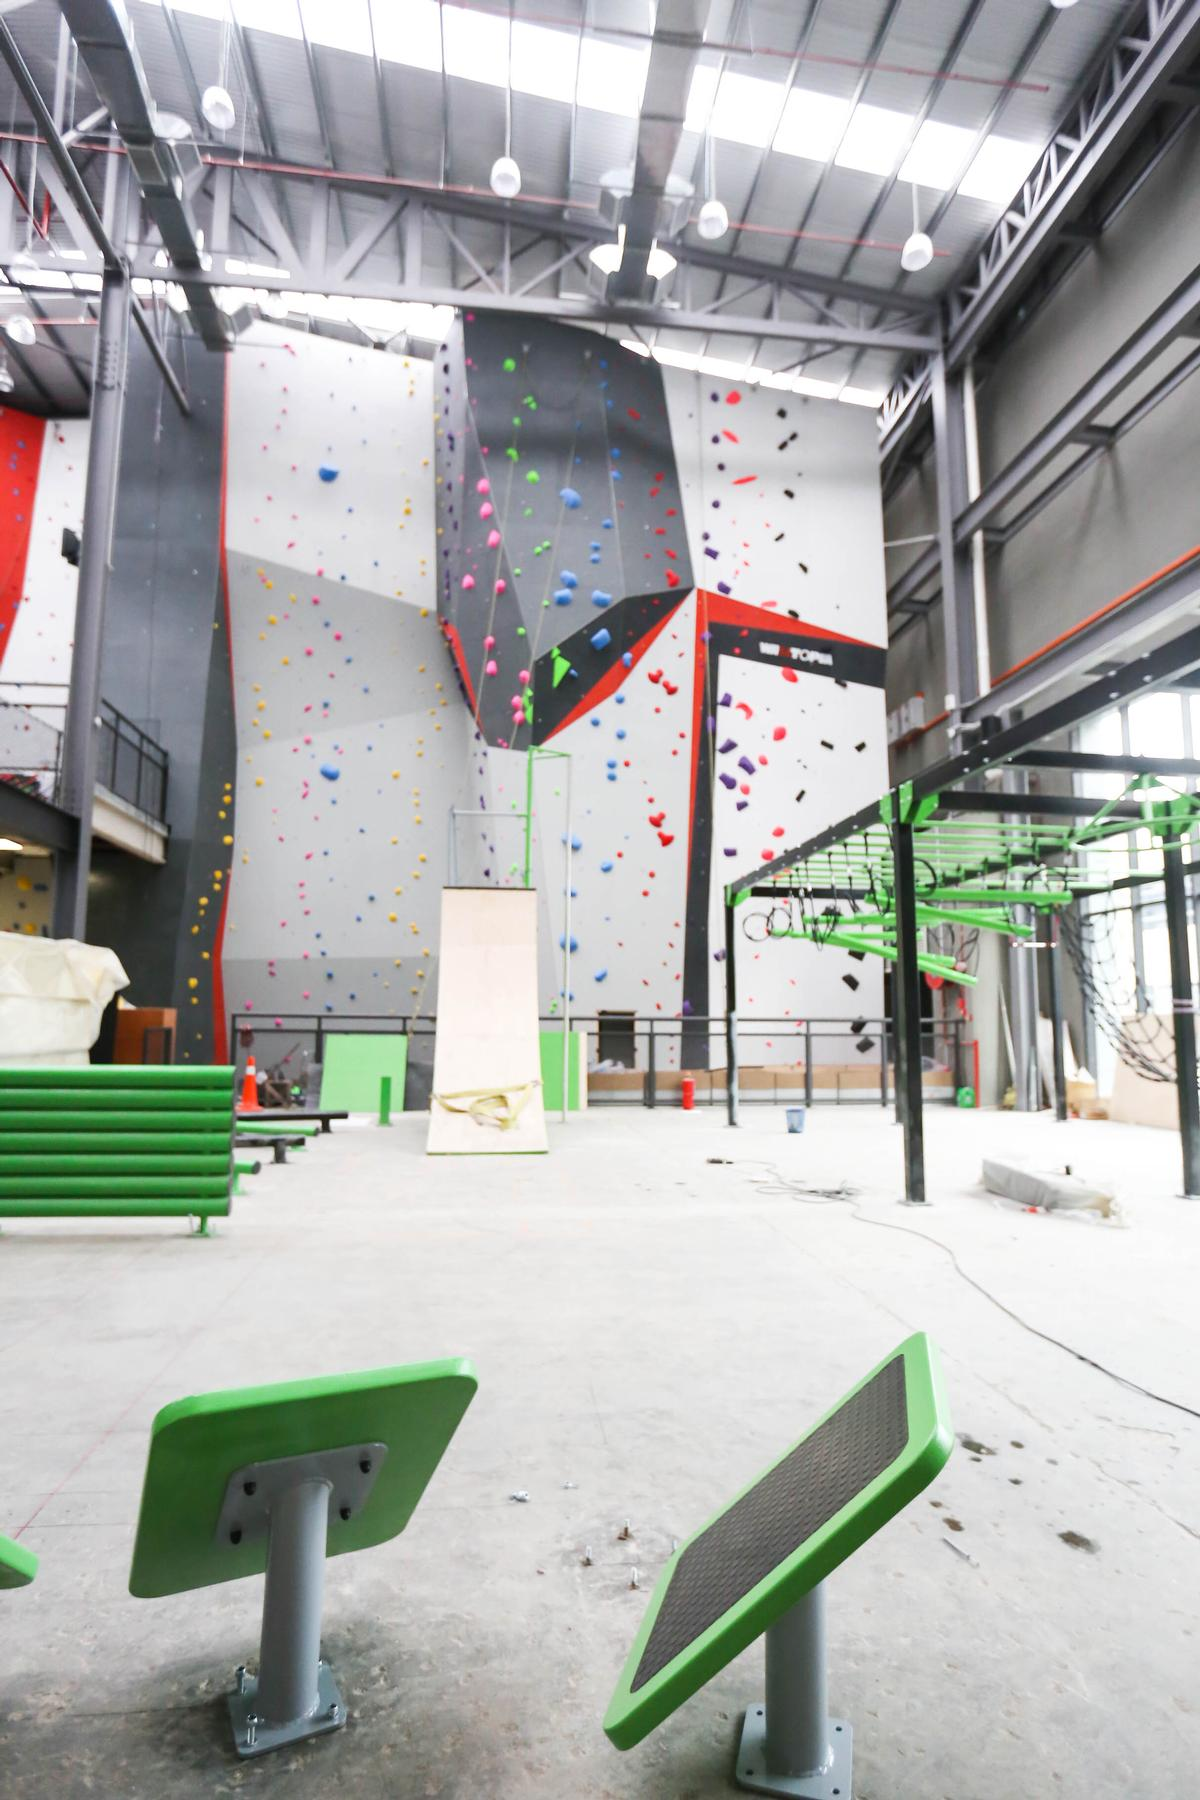 The obstacle course can be used as a training facility and has equipment for timing users